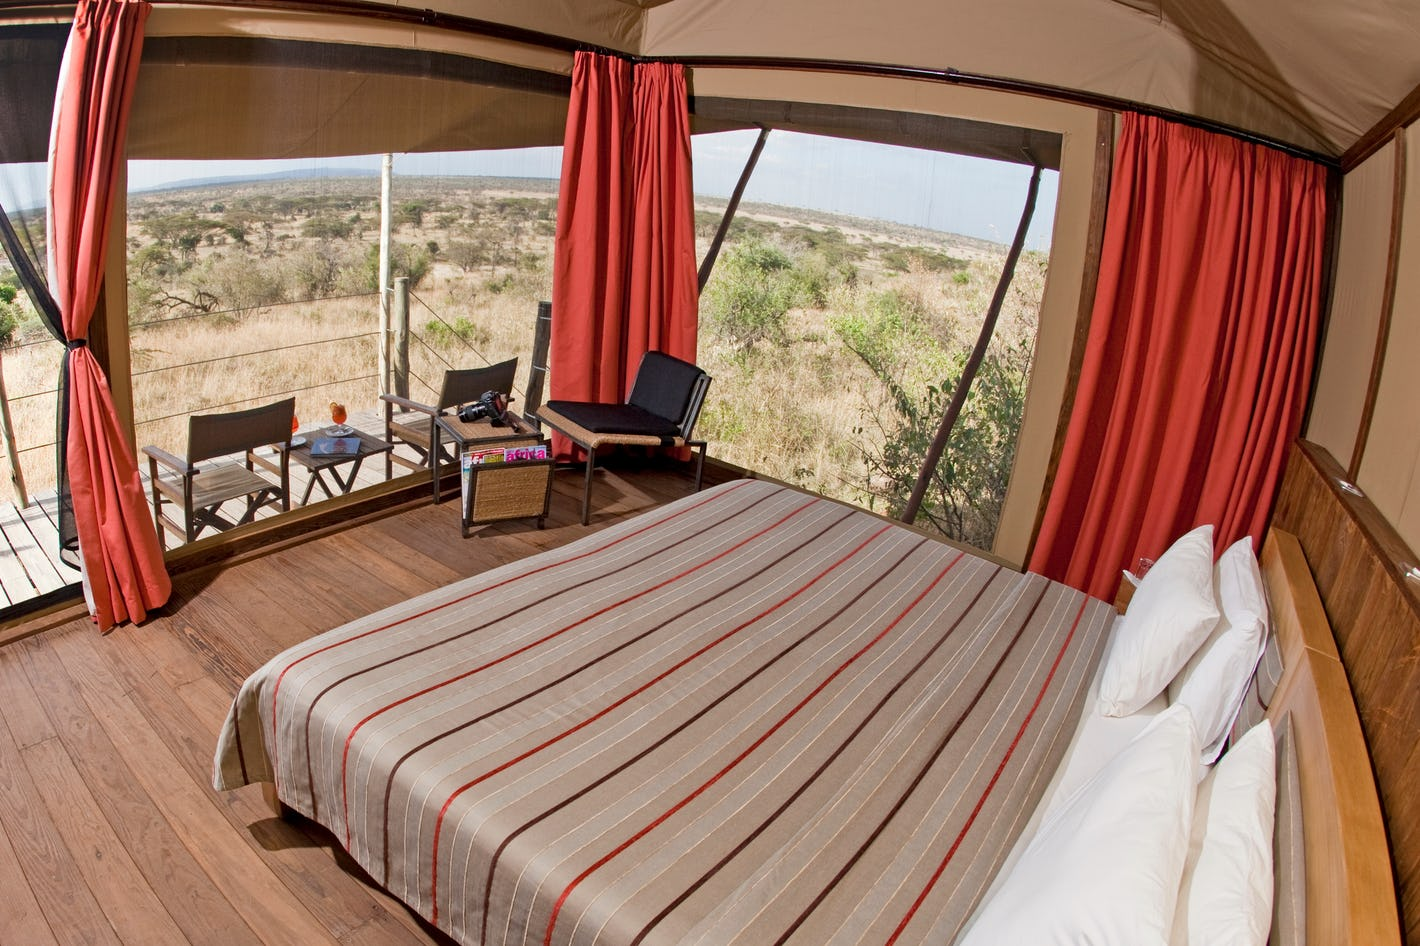 Basecamp Eagle View, Kenya | Timbuktu Travel